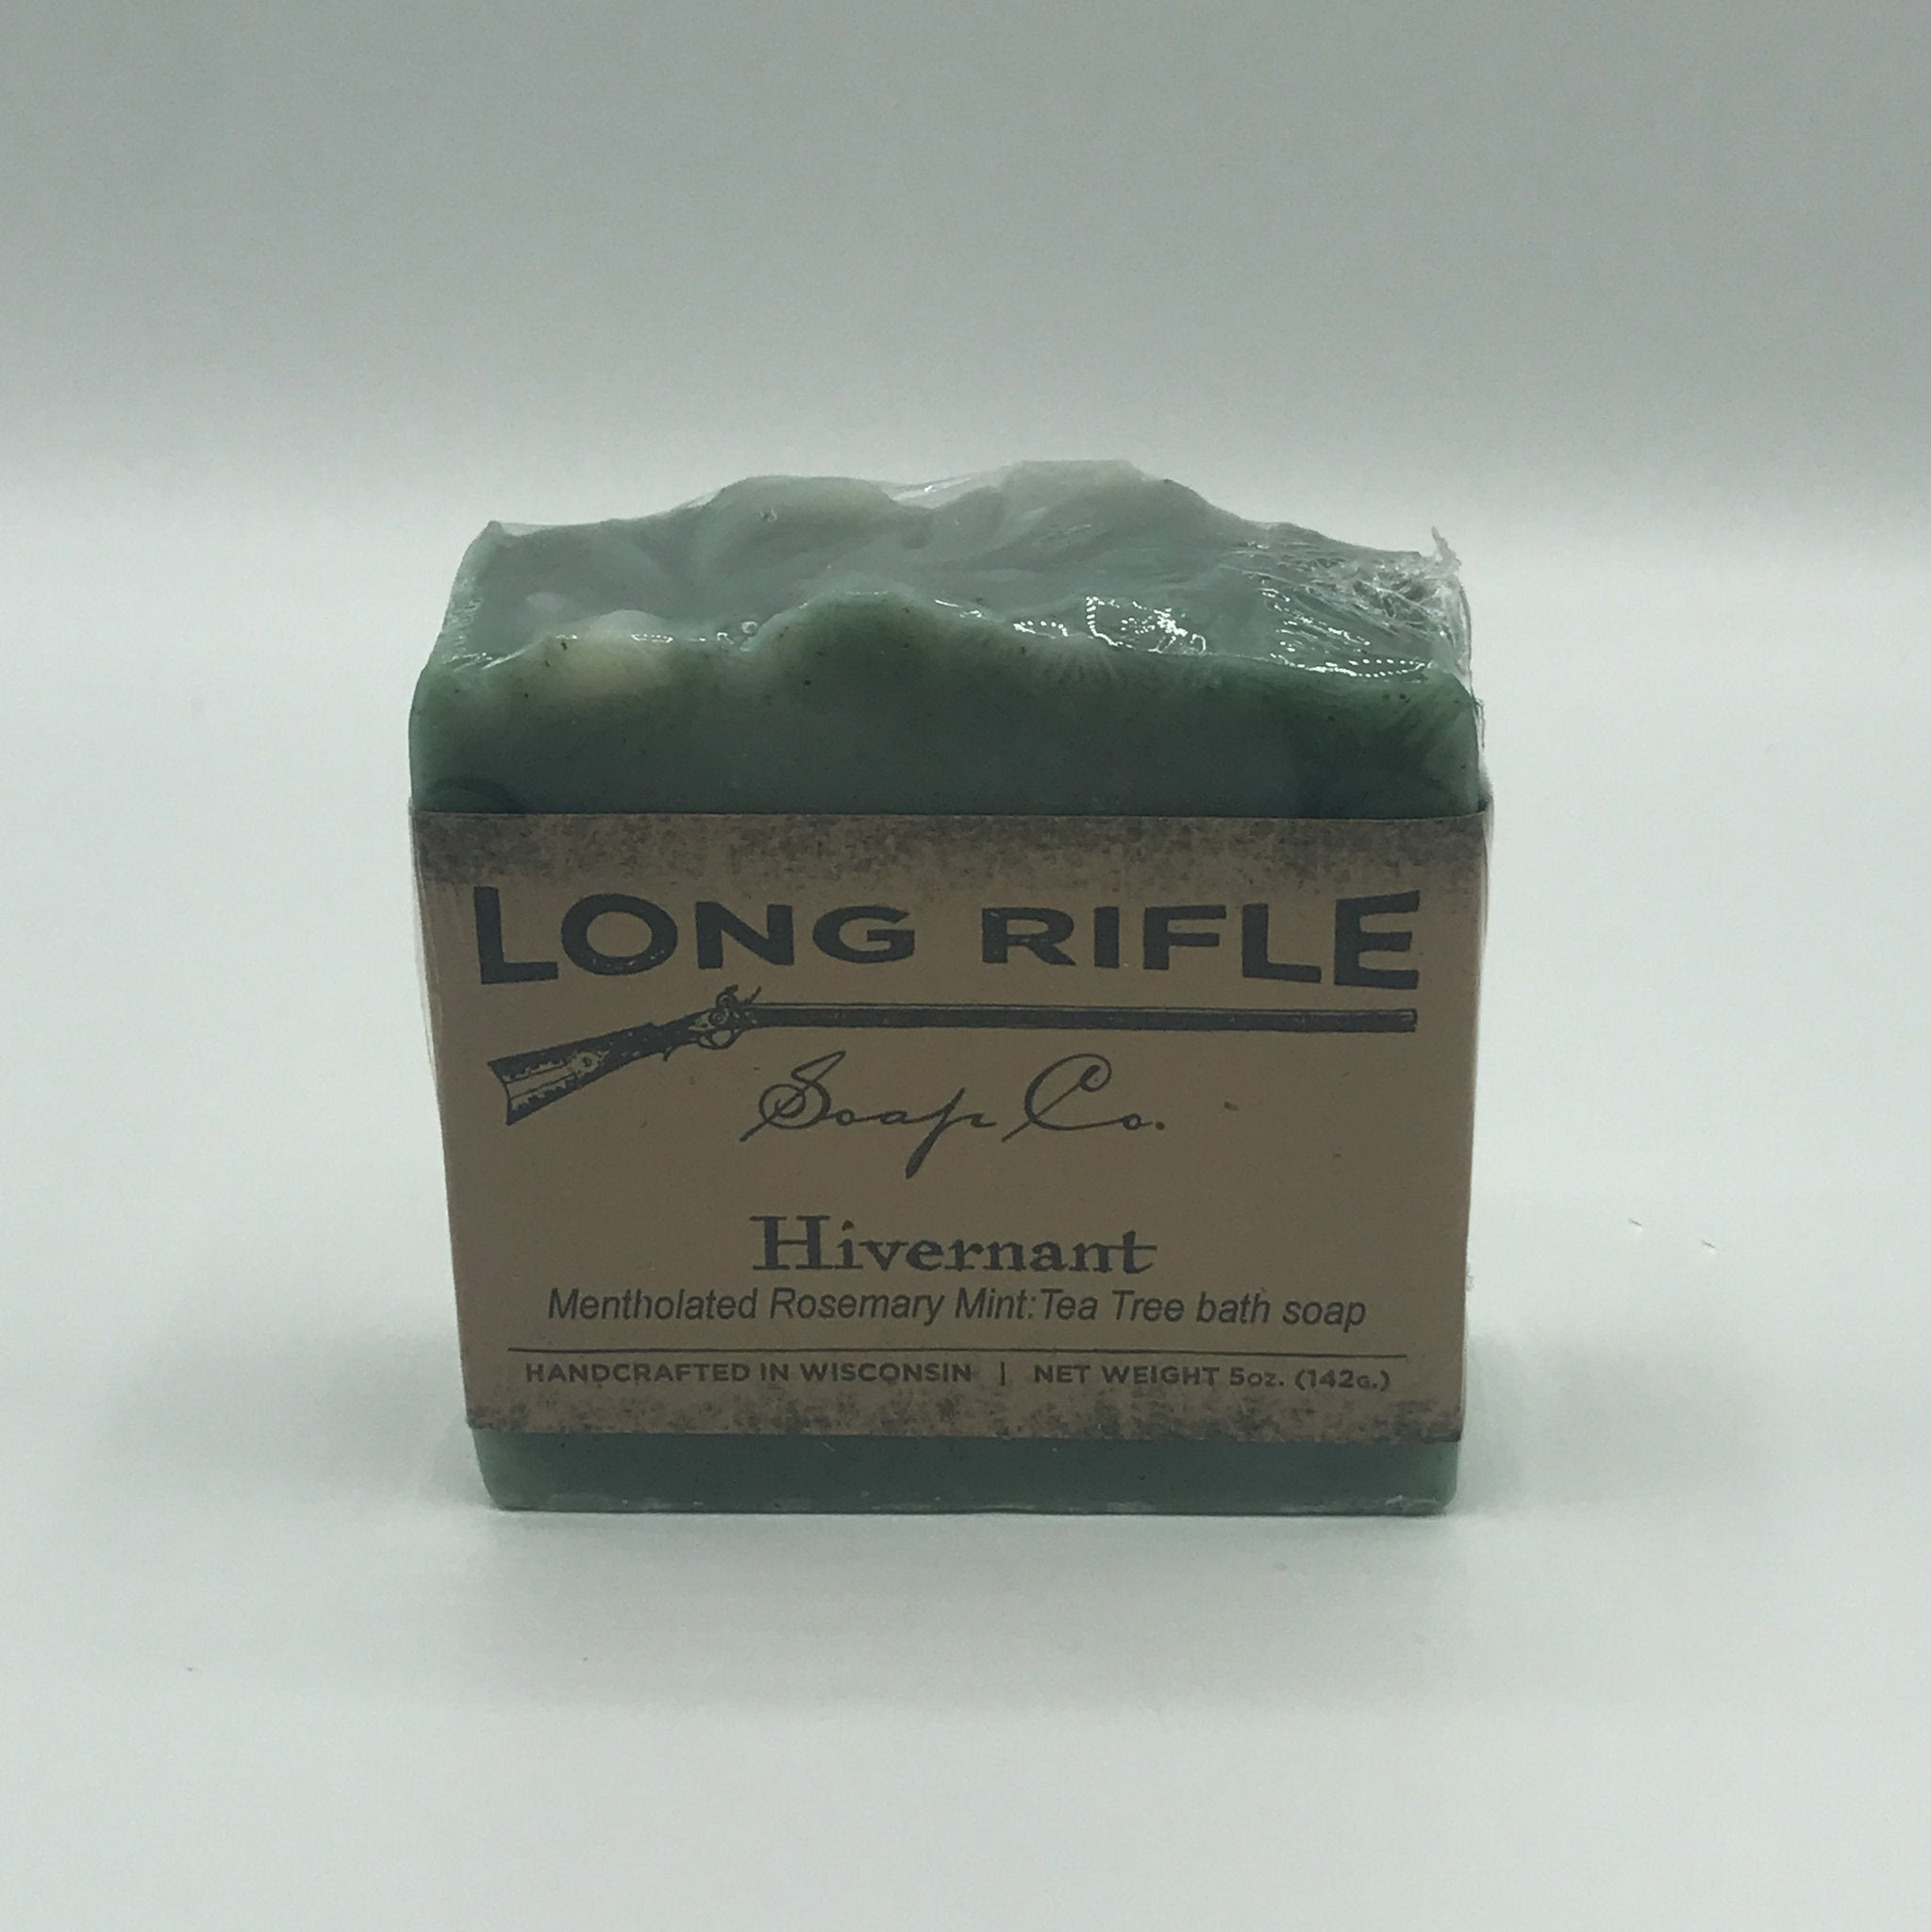 Long Rifle Bar Soap 5oz - Hivernant